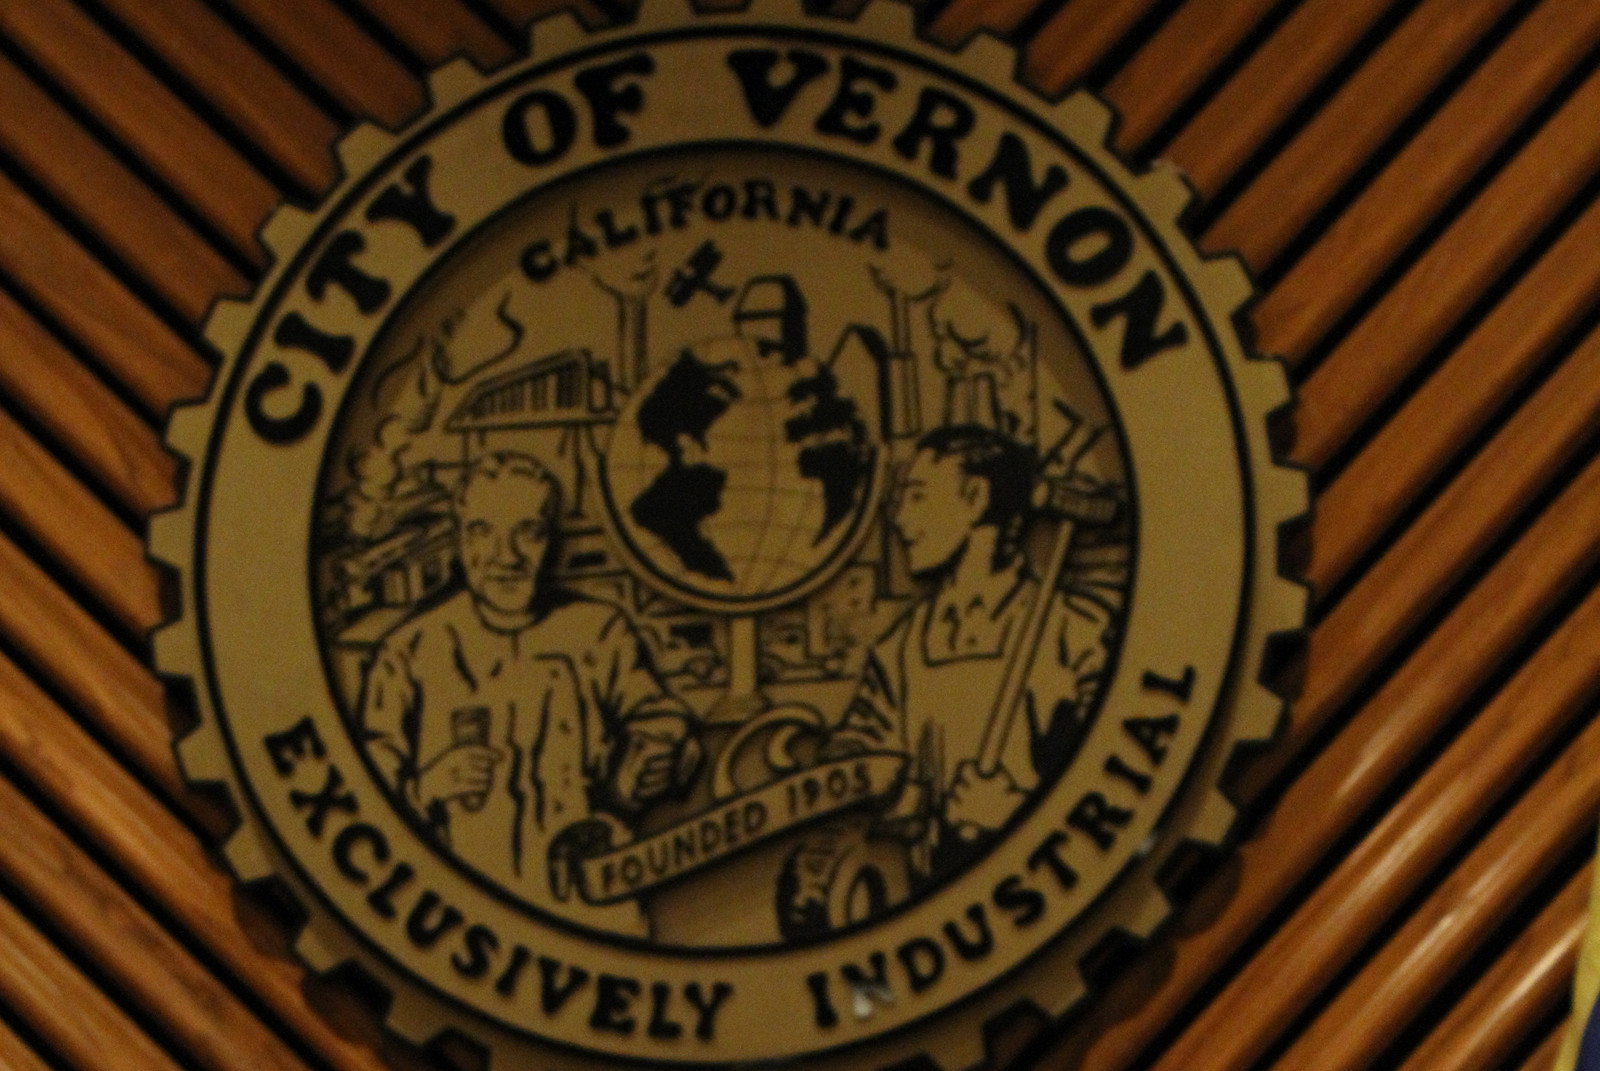 Councilman whose election made history in tiny city of Vernon dies